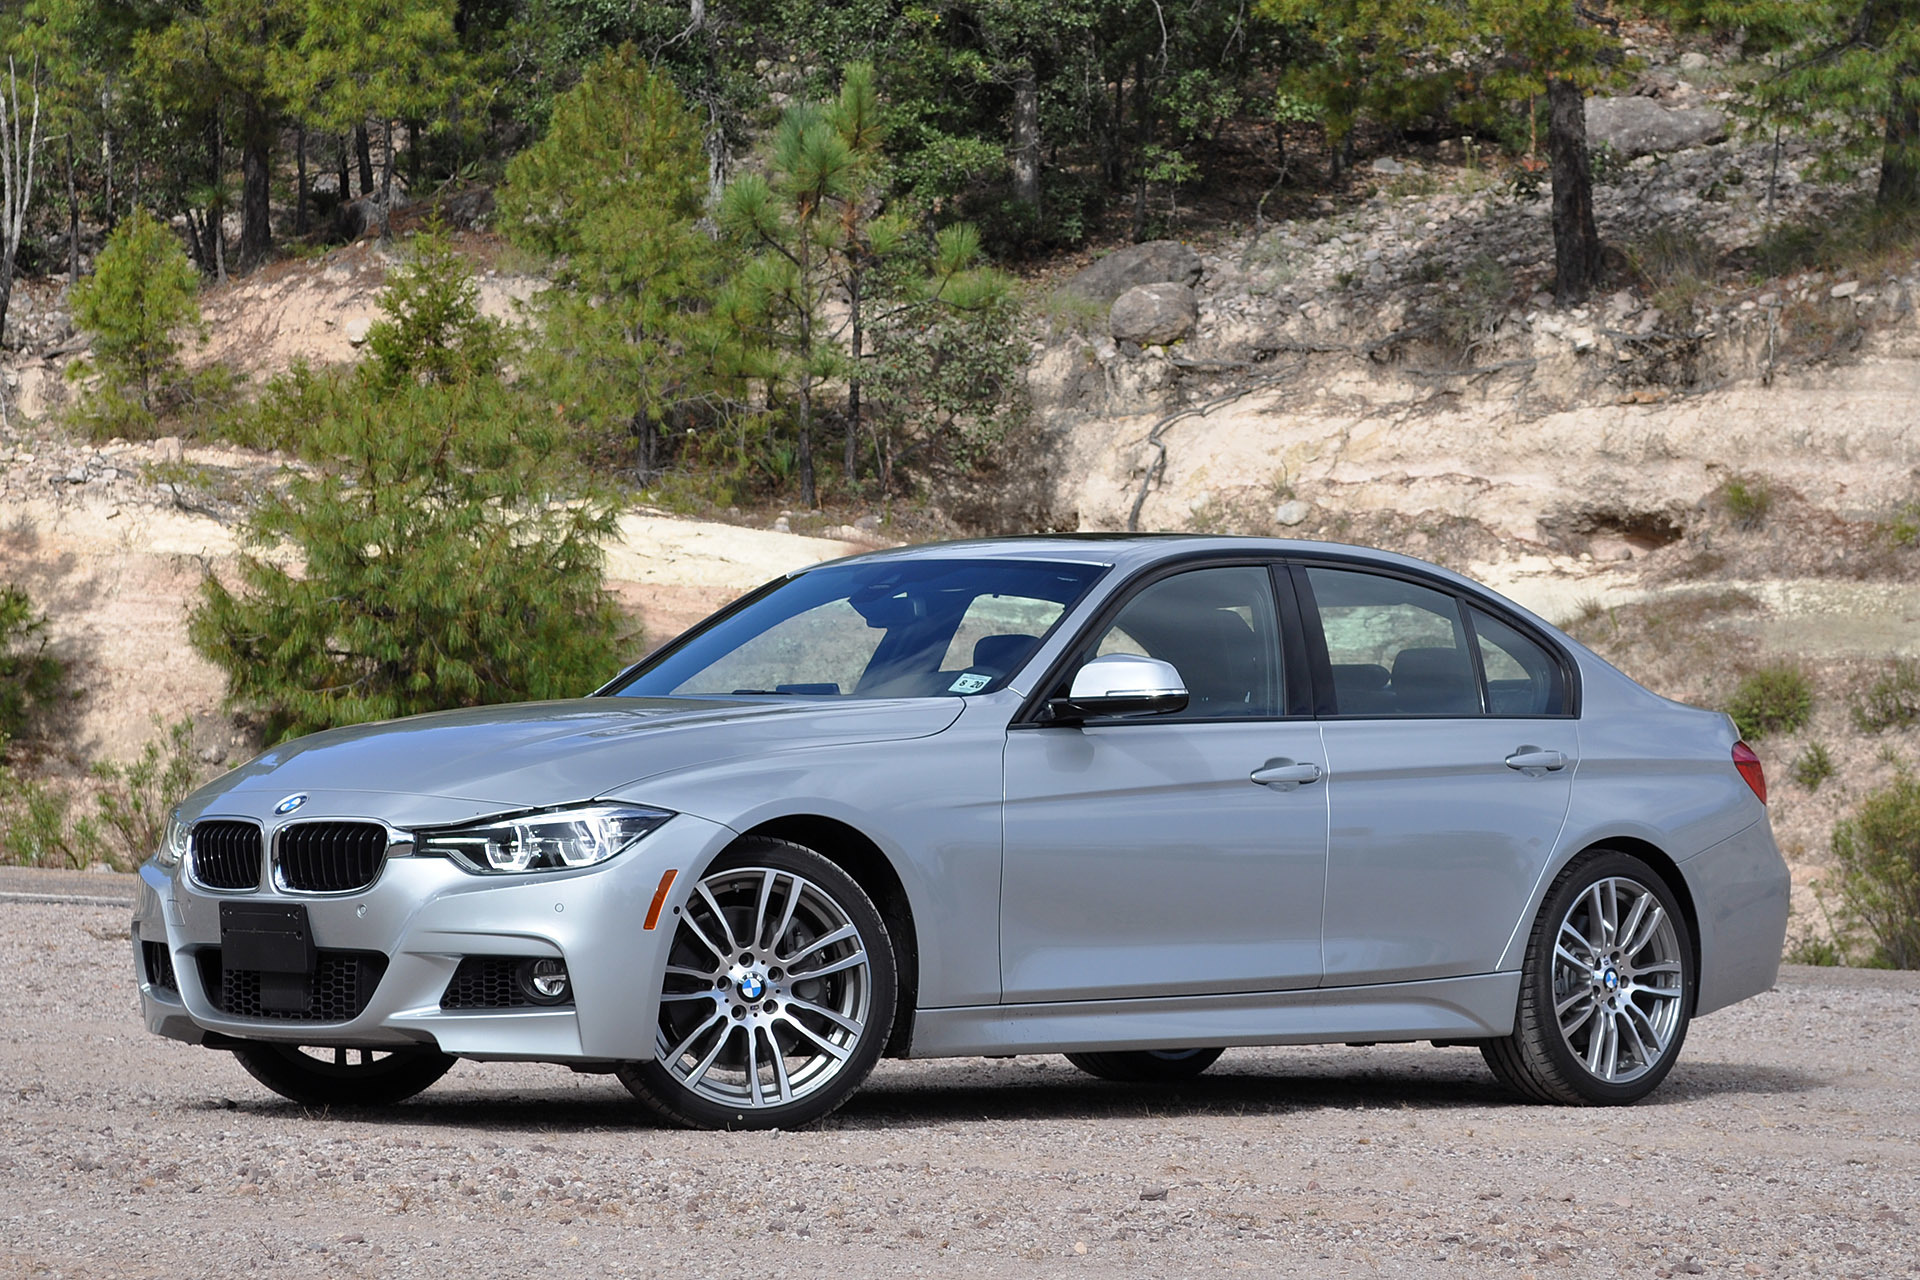 2016 Bmw 3 Series First Drive Photo Gallery Autoblog Opel Omega Fuse Box